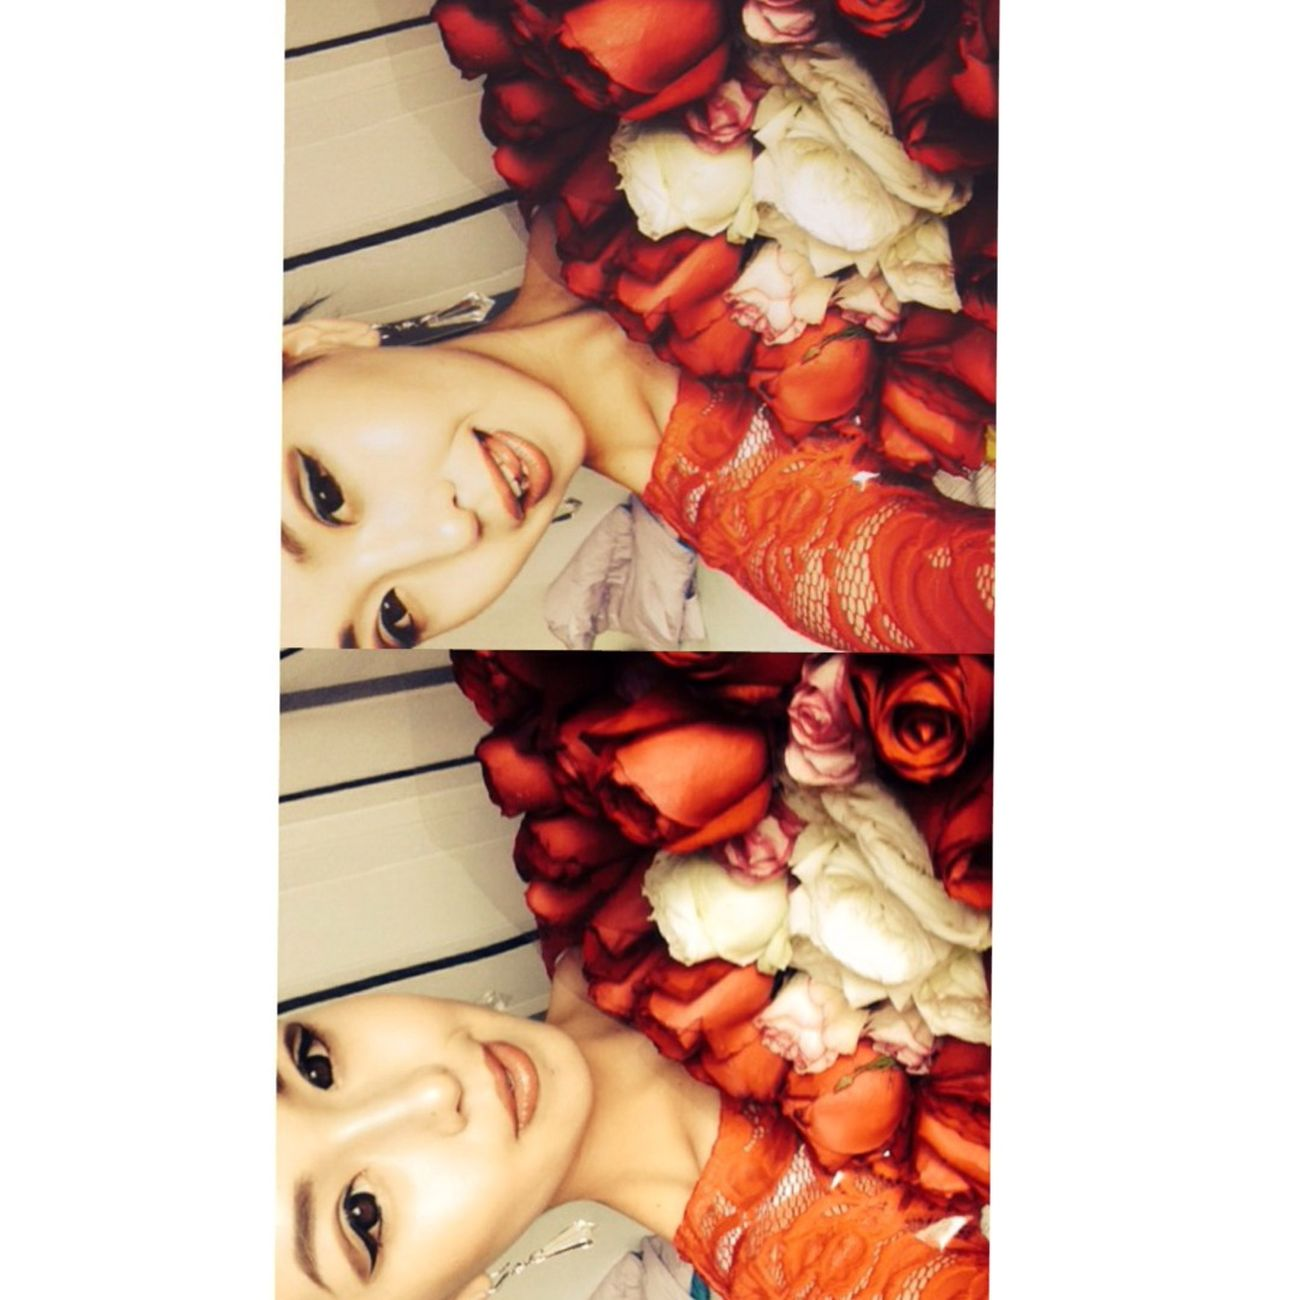 47roses Thankyou Somuch Red Shooting Selfie